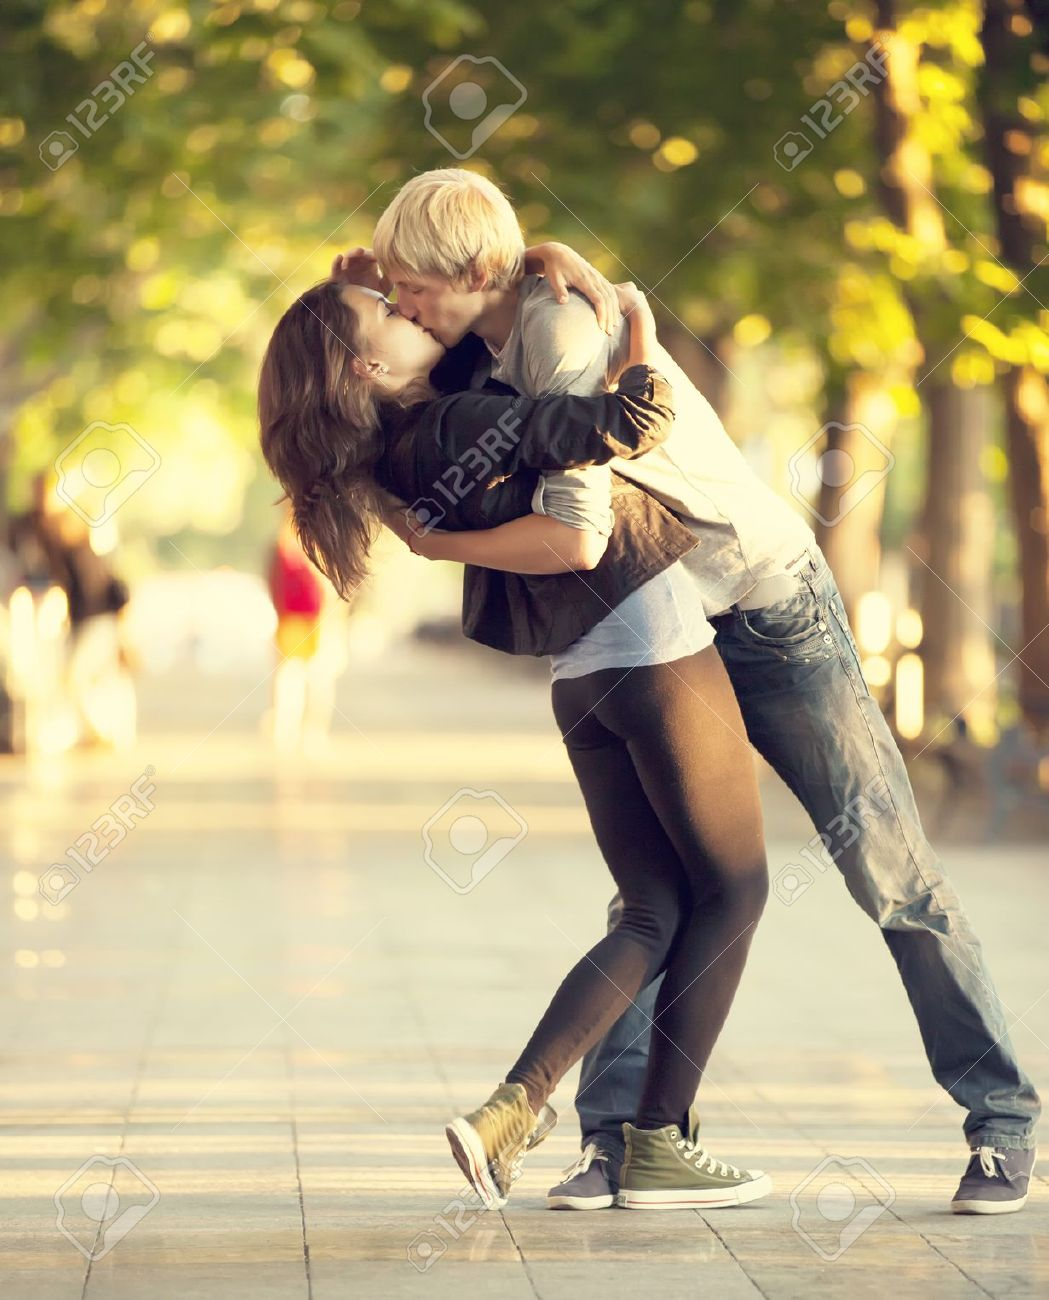 Young couple kissing on the street Stock Photo - 14727960